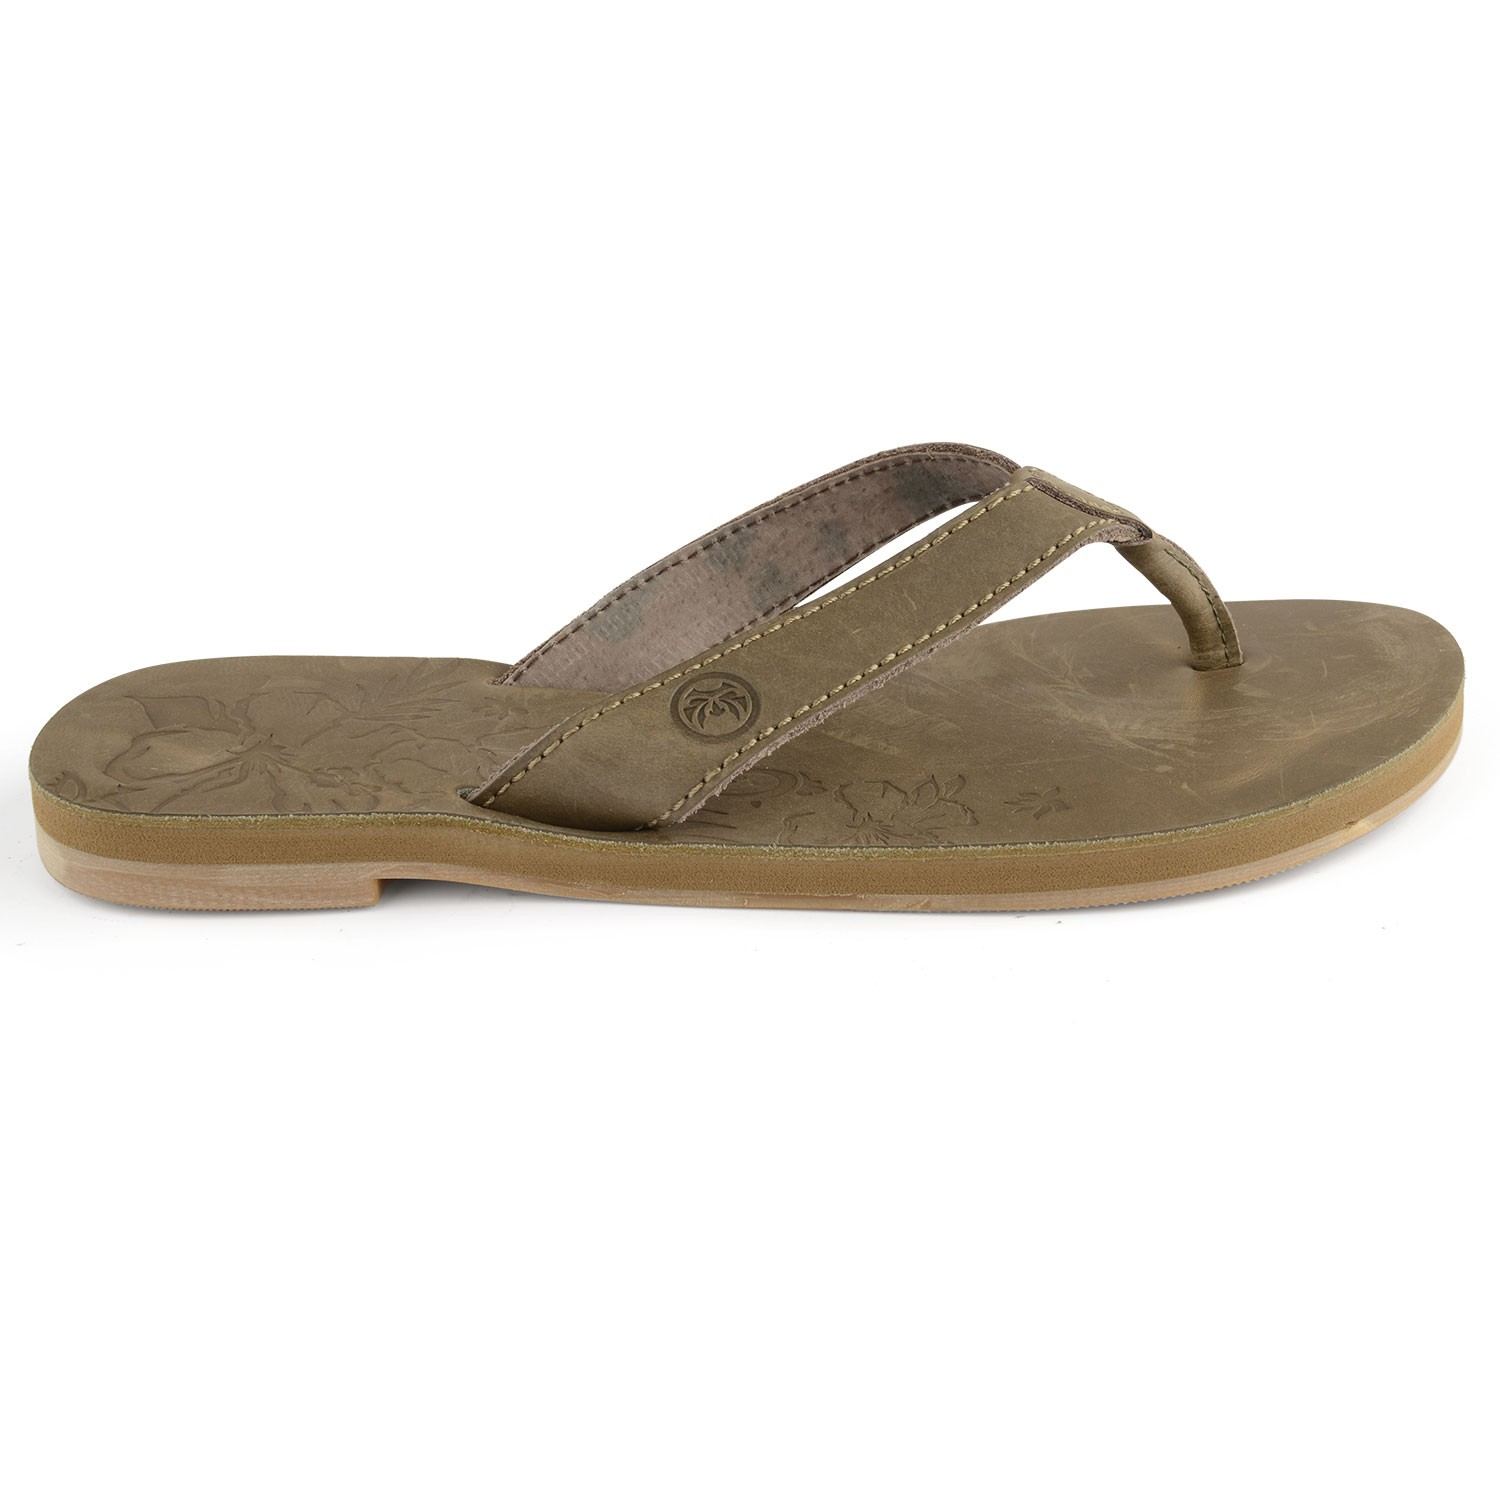 347e57ef8d640 Womens Brown Leather Flip Flops Long Island- Free Delivery Over £20 ...